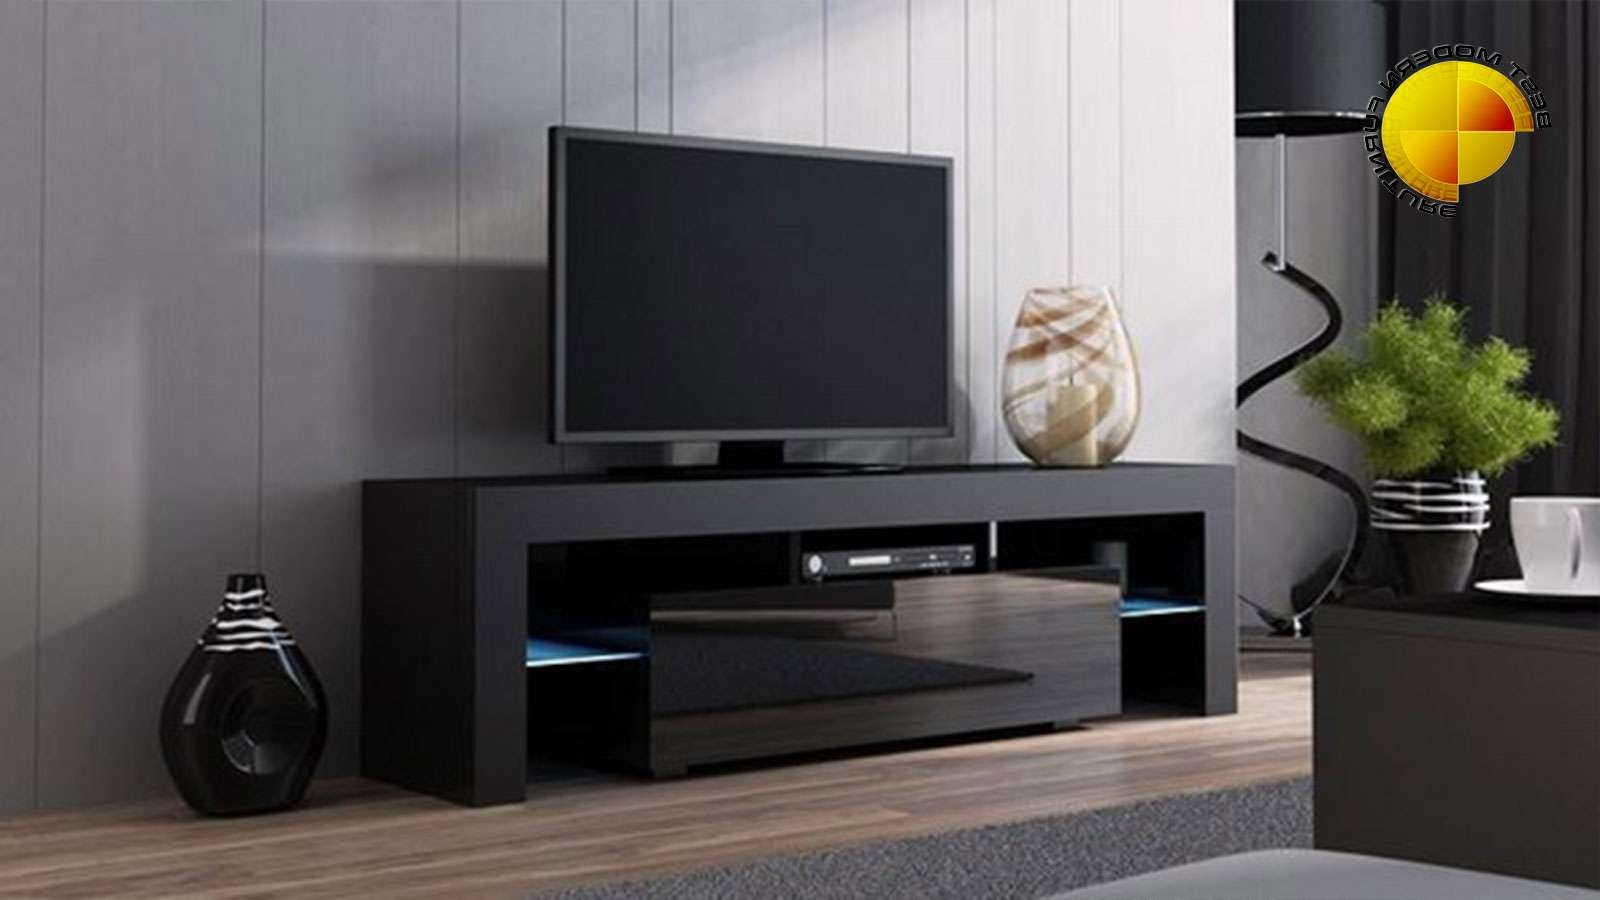 Modern Tv Stand 160cm High Gloss Cabinet Rgb Led Lights Black Unit Throughout High Gloss Tv Cabinets (View 12 of 20)